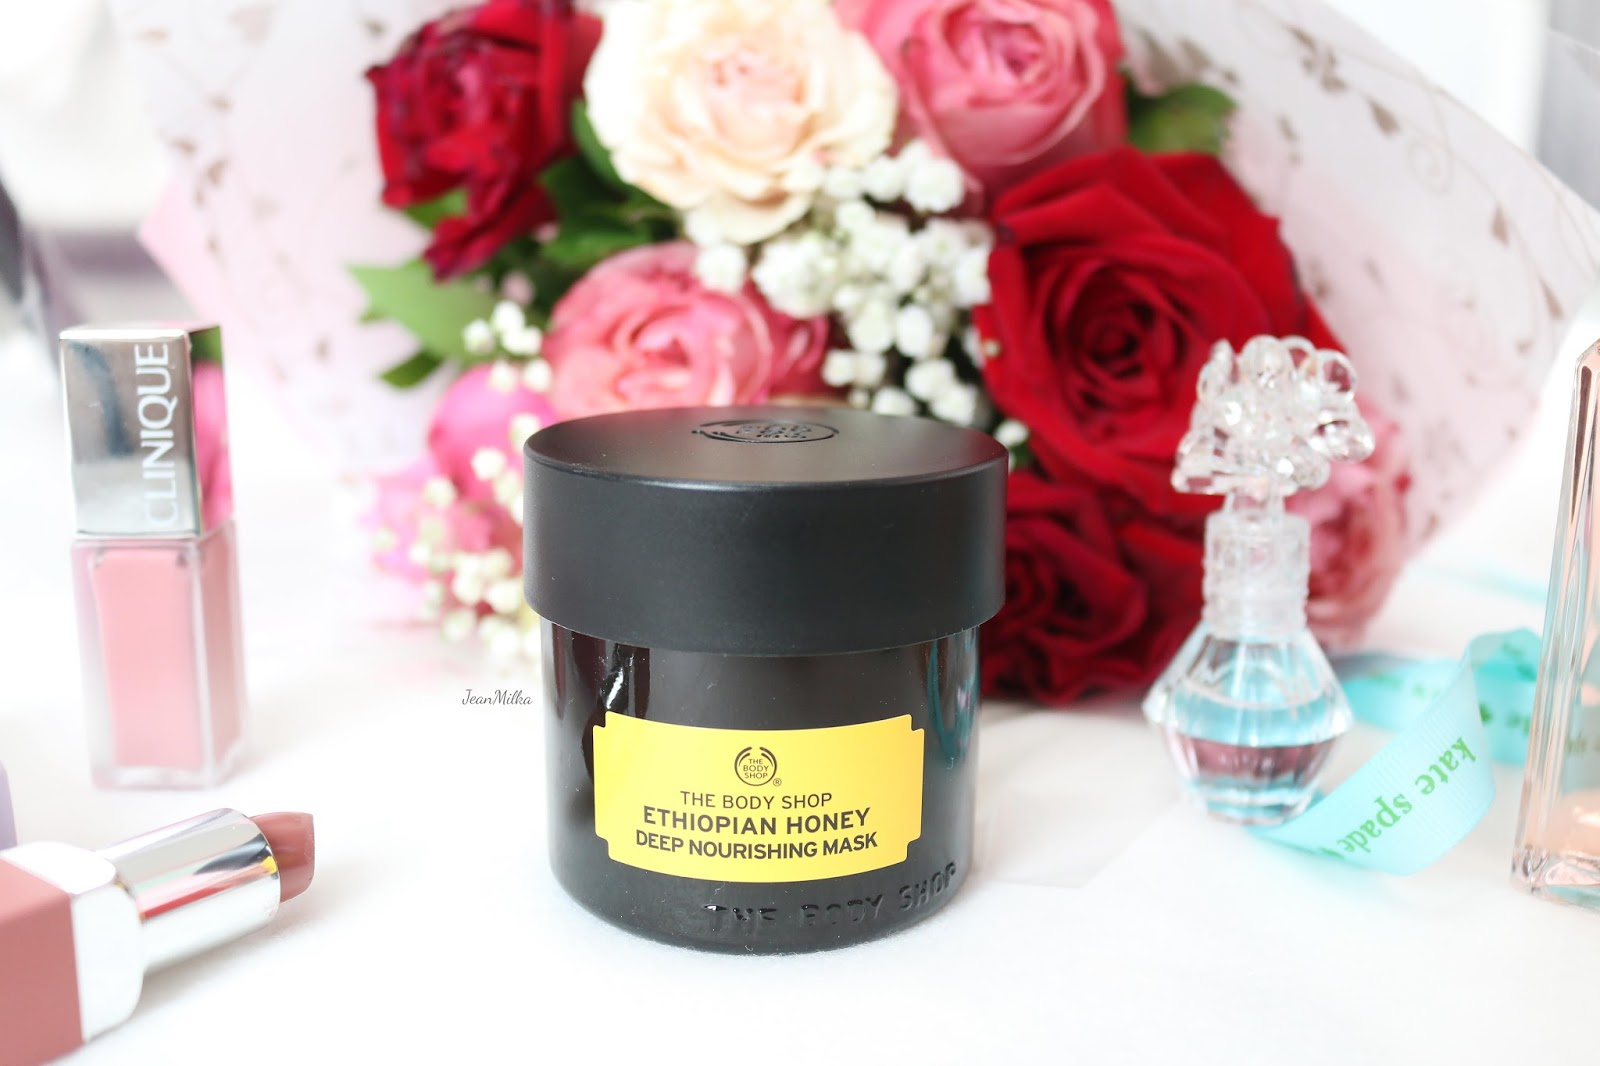 the body shop, body shop, superfood mask, the body shop mask, the body shop superfood mask, the body shop skincare, skincare, mask, masker, masker superfood, masker wajah, face mask, new face mask, review, product review, ethiopian honey mask, ethiopian deep nourishing mask